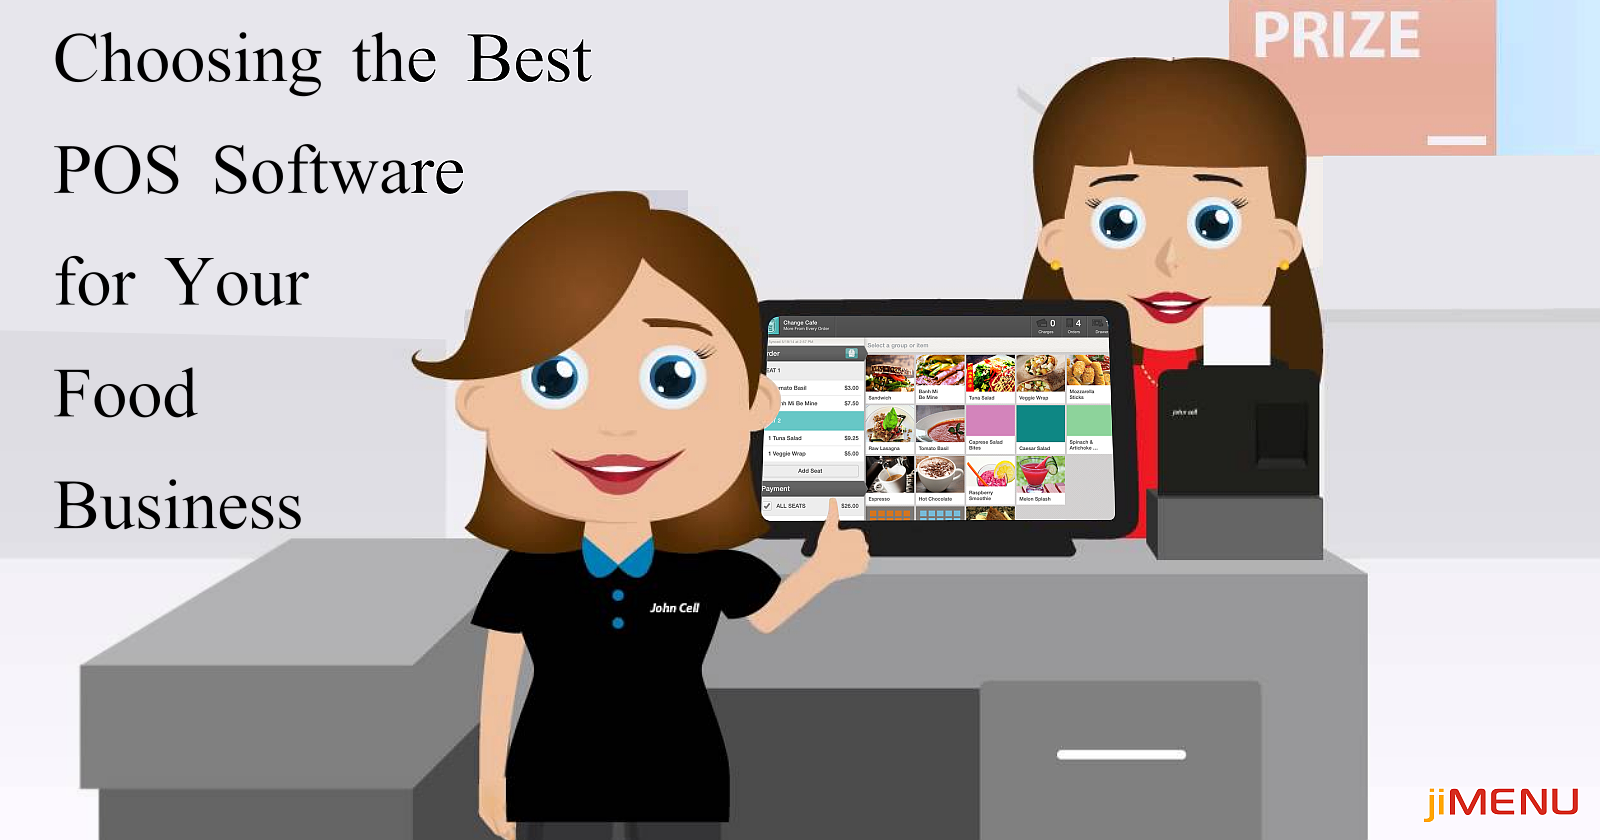 Choosing the Best POS Software for Your Food Business